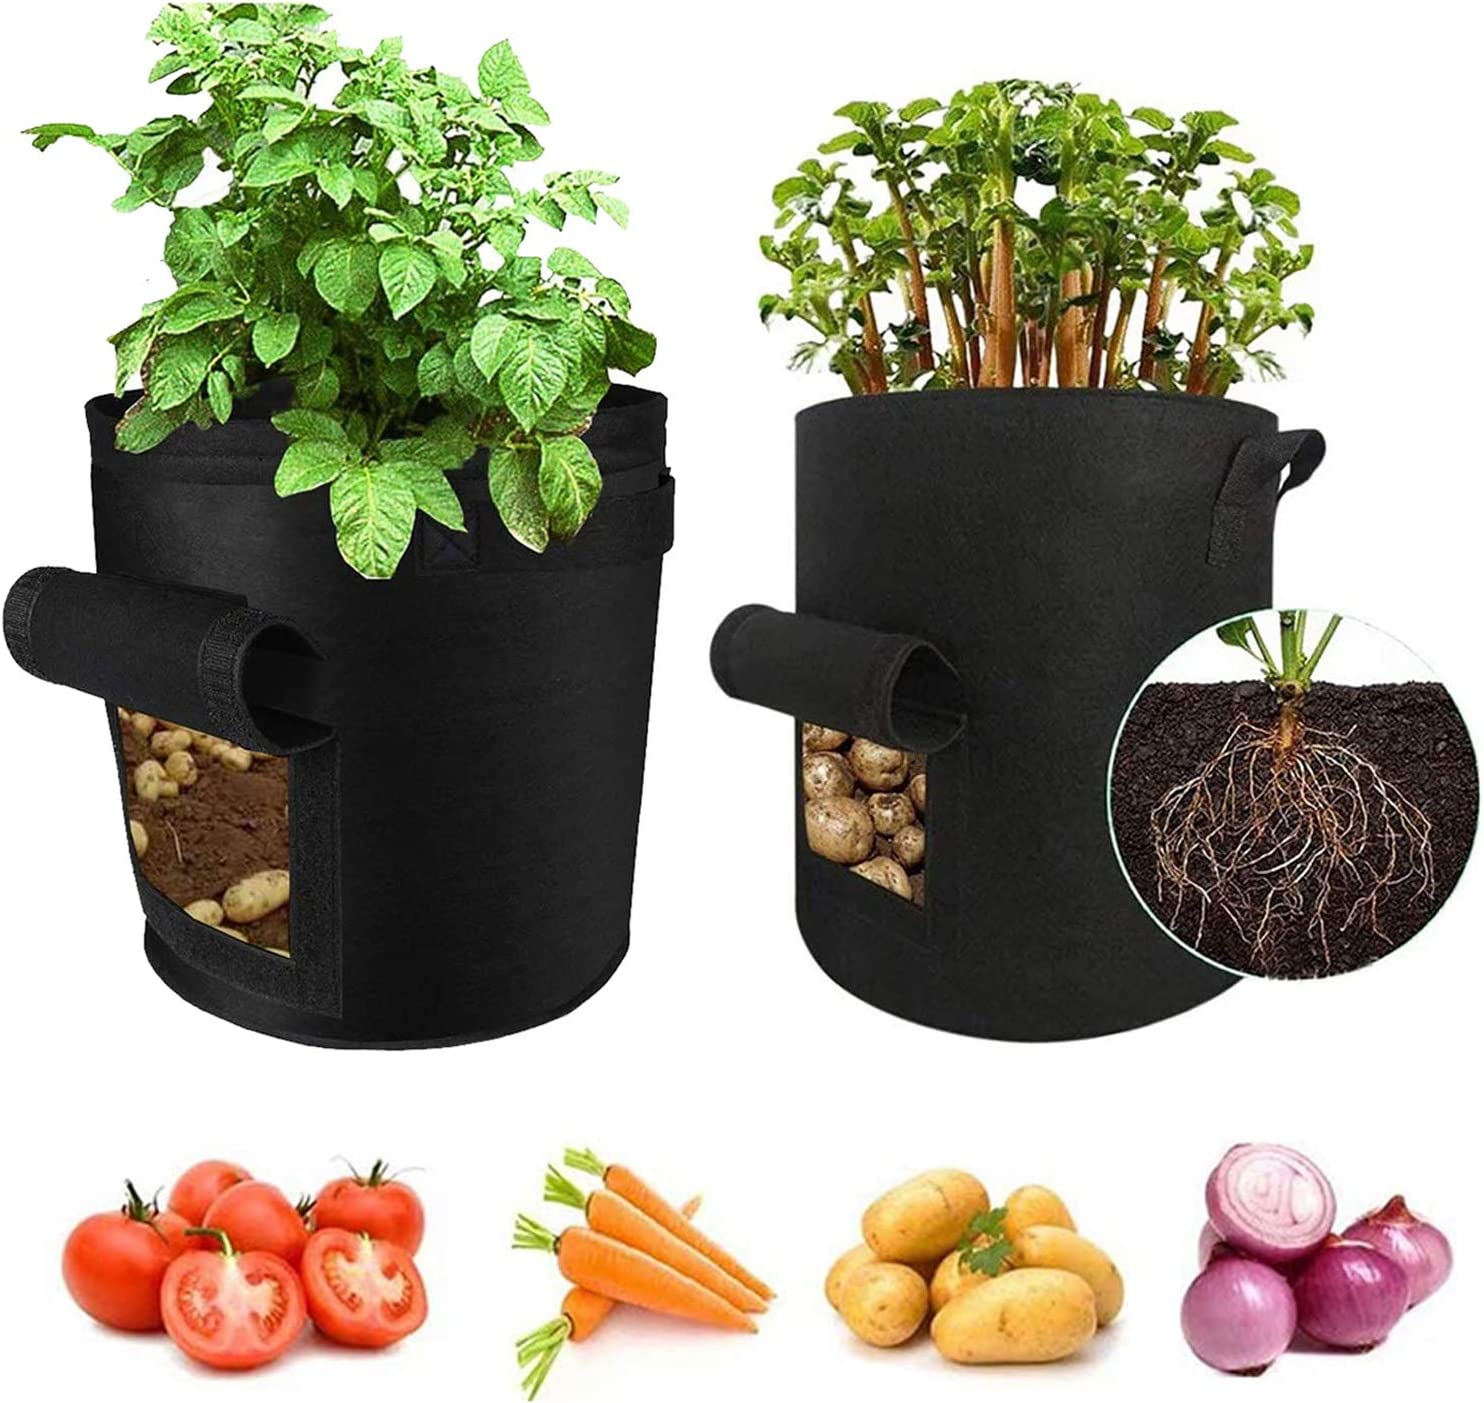 Grow Bags,Garden Plant Bag,Heavy Duty 400G Thick Fabric Container/Aeration Pots with Handles for Potato/Onion/Tomato/Flower Planting Growing Bags (10 Gallon)